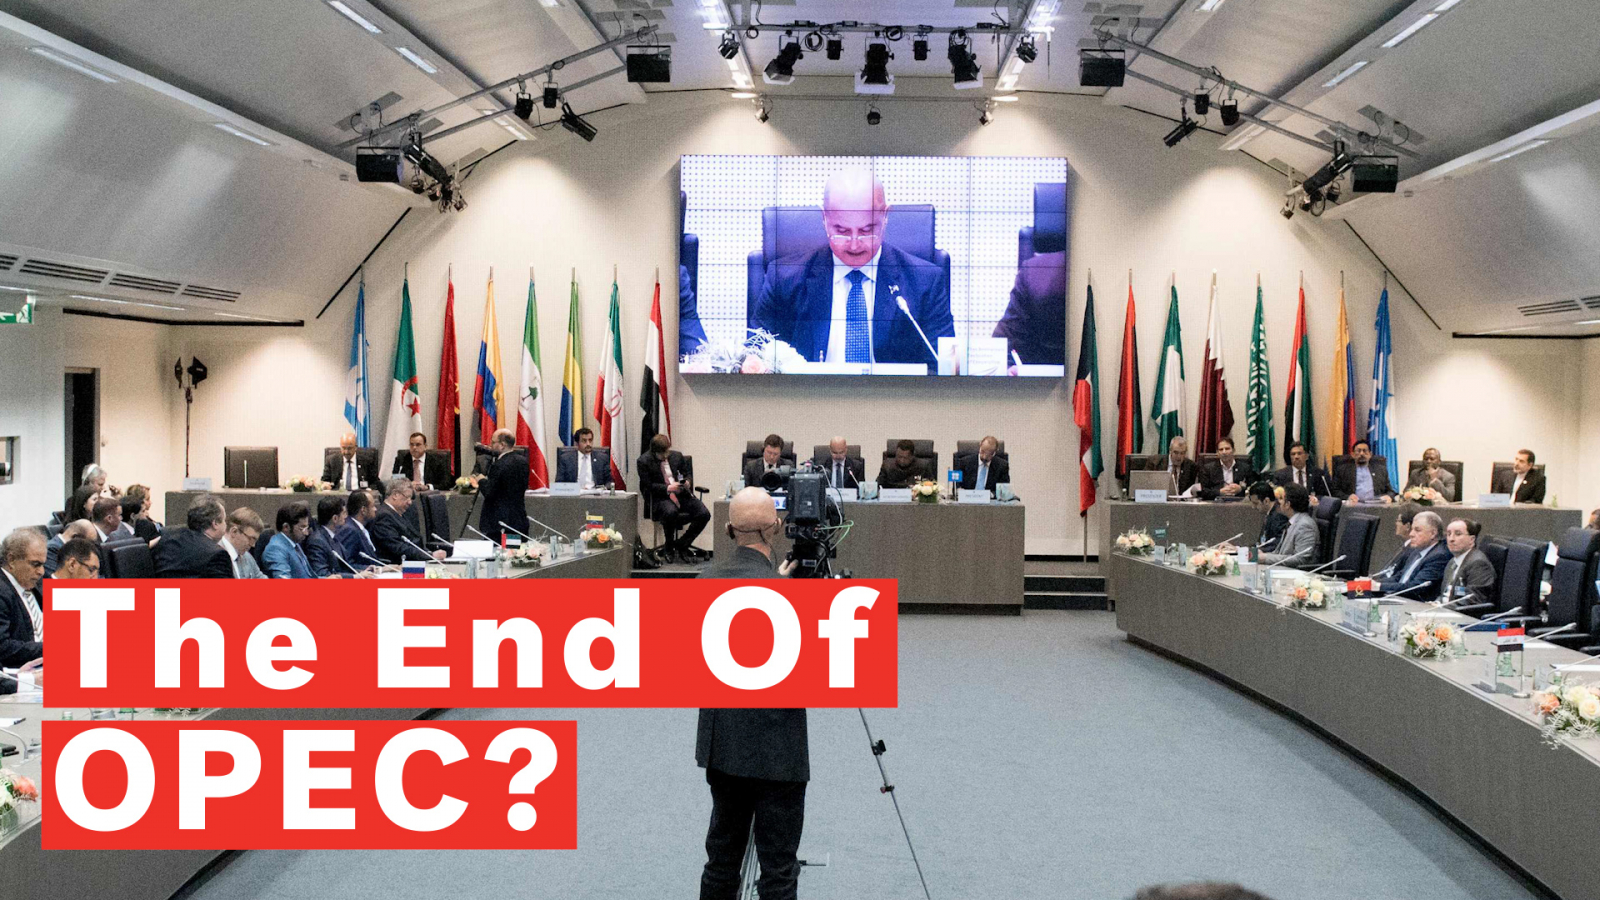 End of opec